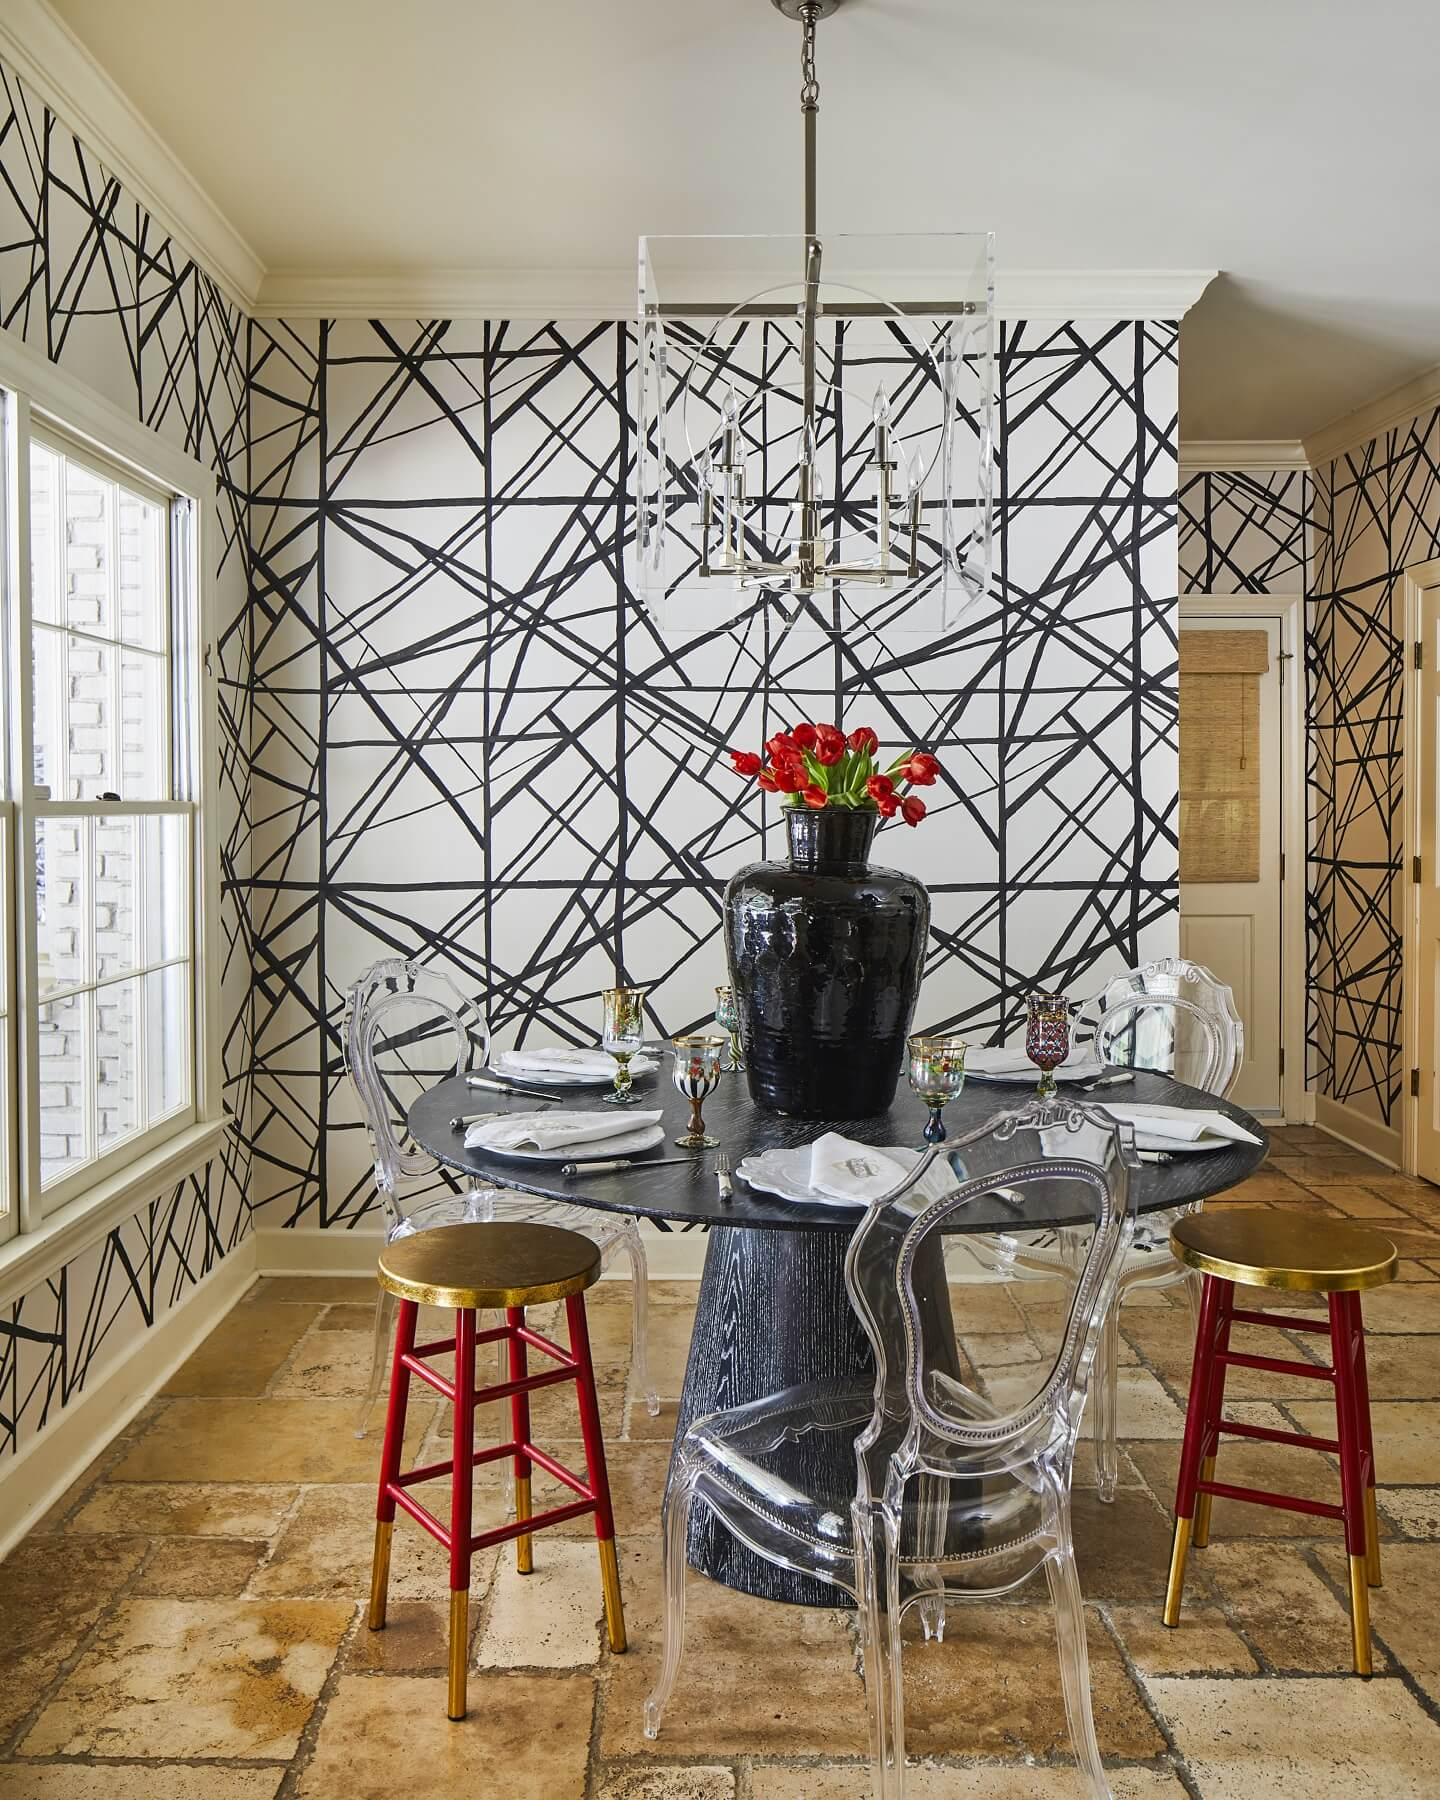 With its red gilded stools, acrylic ghost chairs, ghost chandelier, statement-making wallpaper and imposing modern table and centerpiece, this black-and-white dining nook is teeming with art-forward personality.